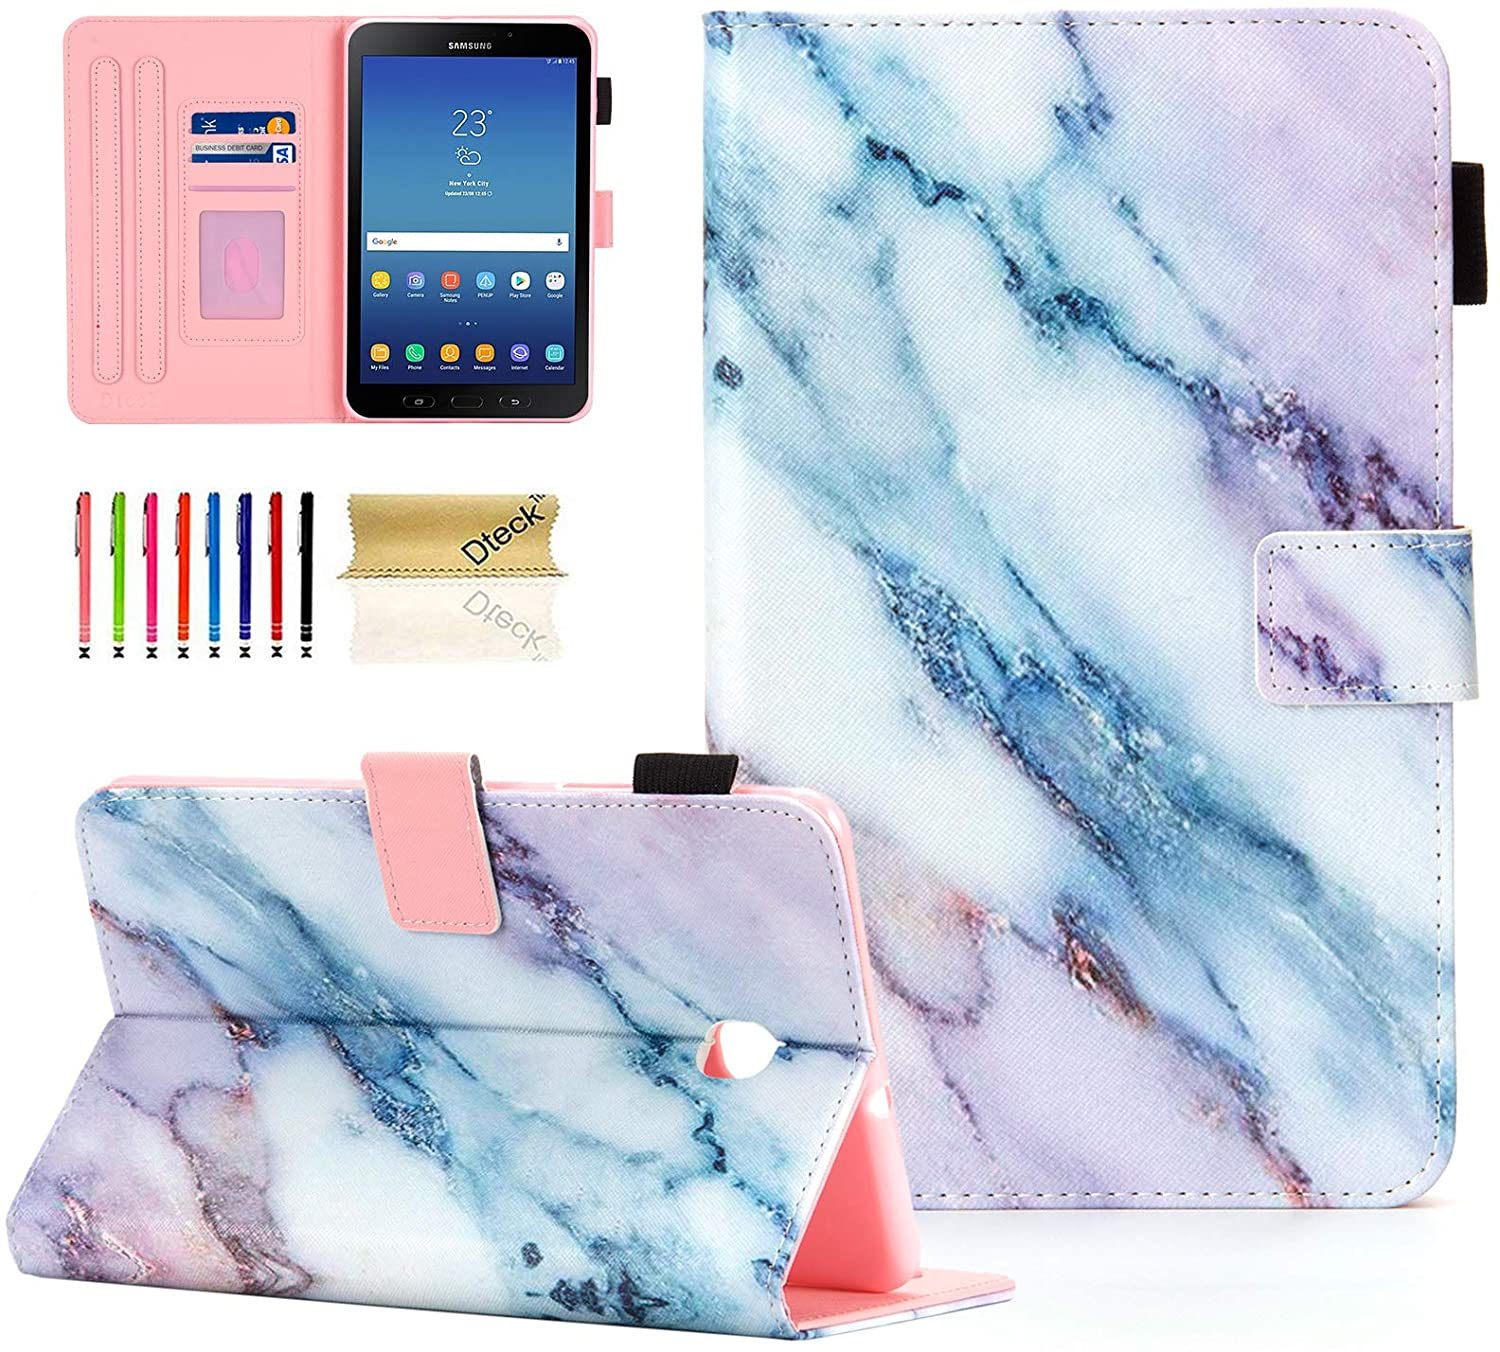 SM-T387 Case, Galaxy Tab A 8.0 Case, Dteck Slim Fit Folio Stand Premium Leather Cover with Card Holder/Photo Slot for Samsung Galaxy Tab A 8.0 inch 2018 Release SM-T387 Tablet, Pink Marble